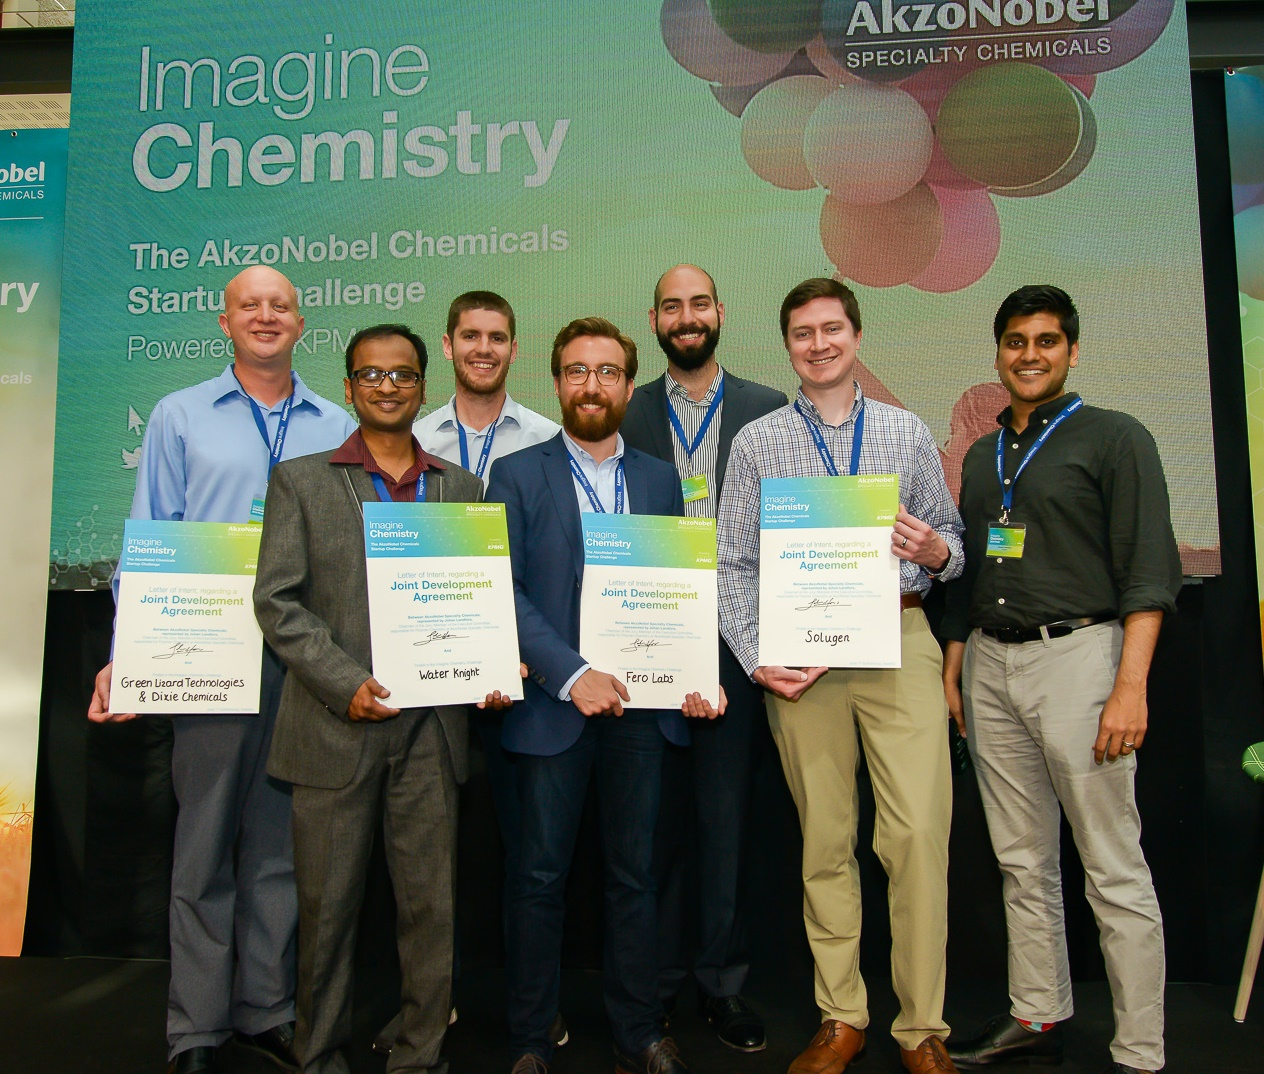 AkzoNobel Specialty Chemicals announces 2018 Imagine Chemistry winners